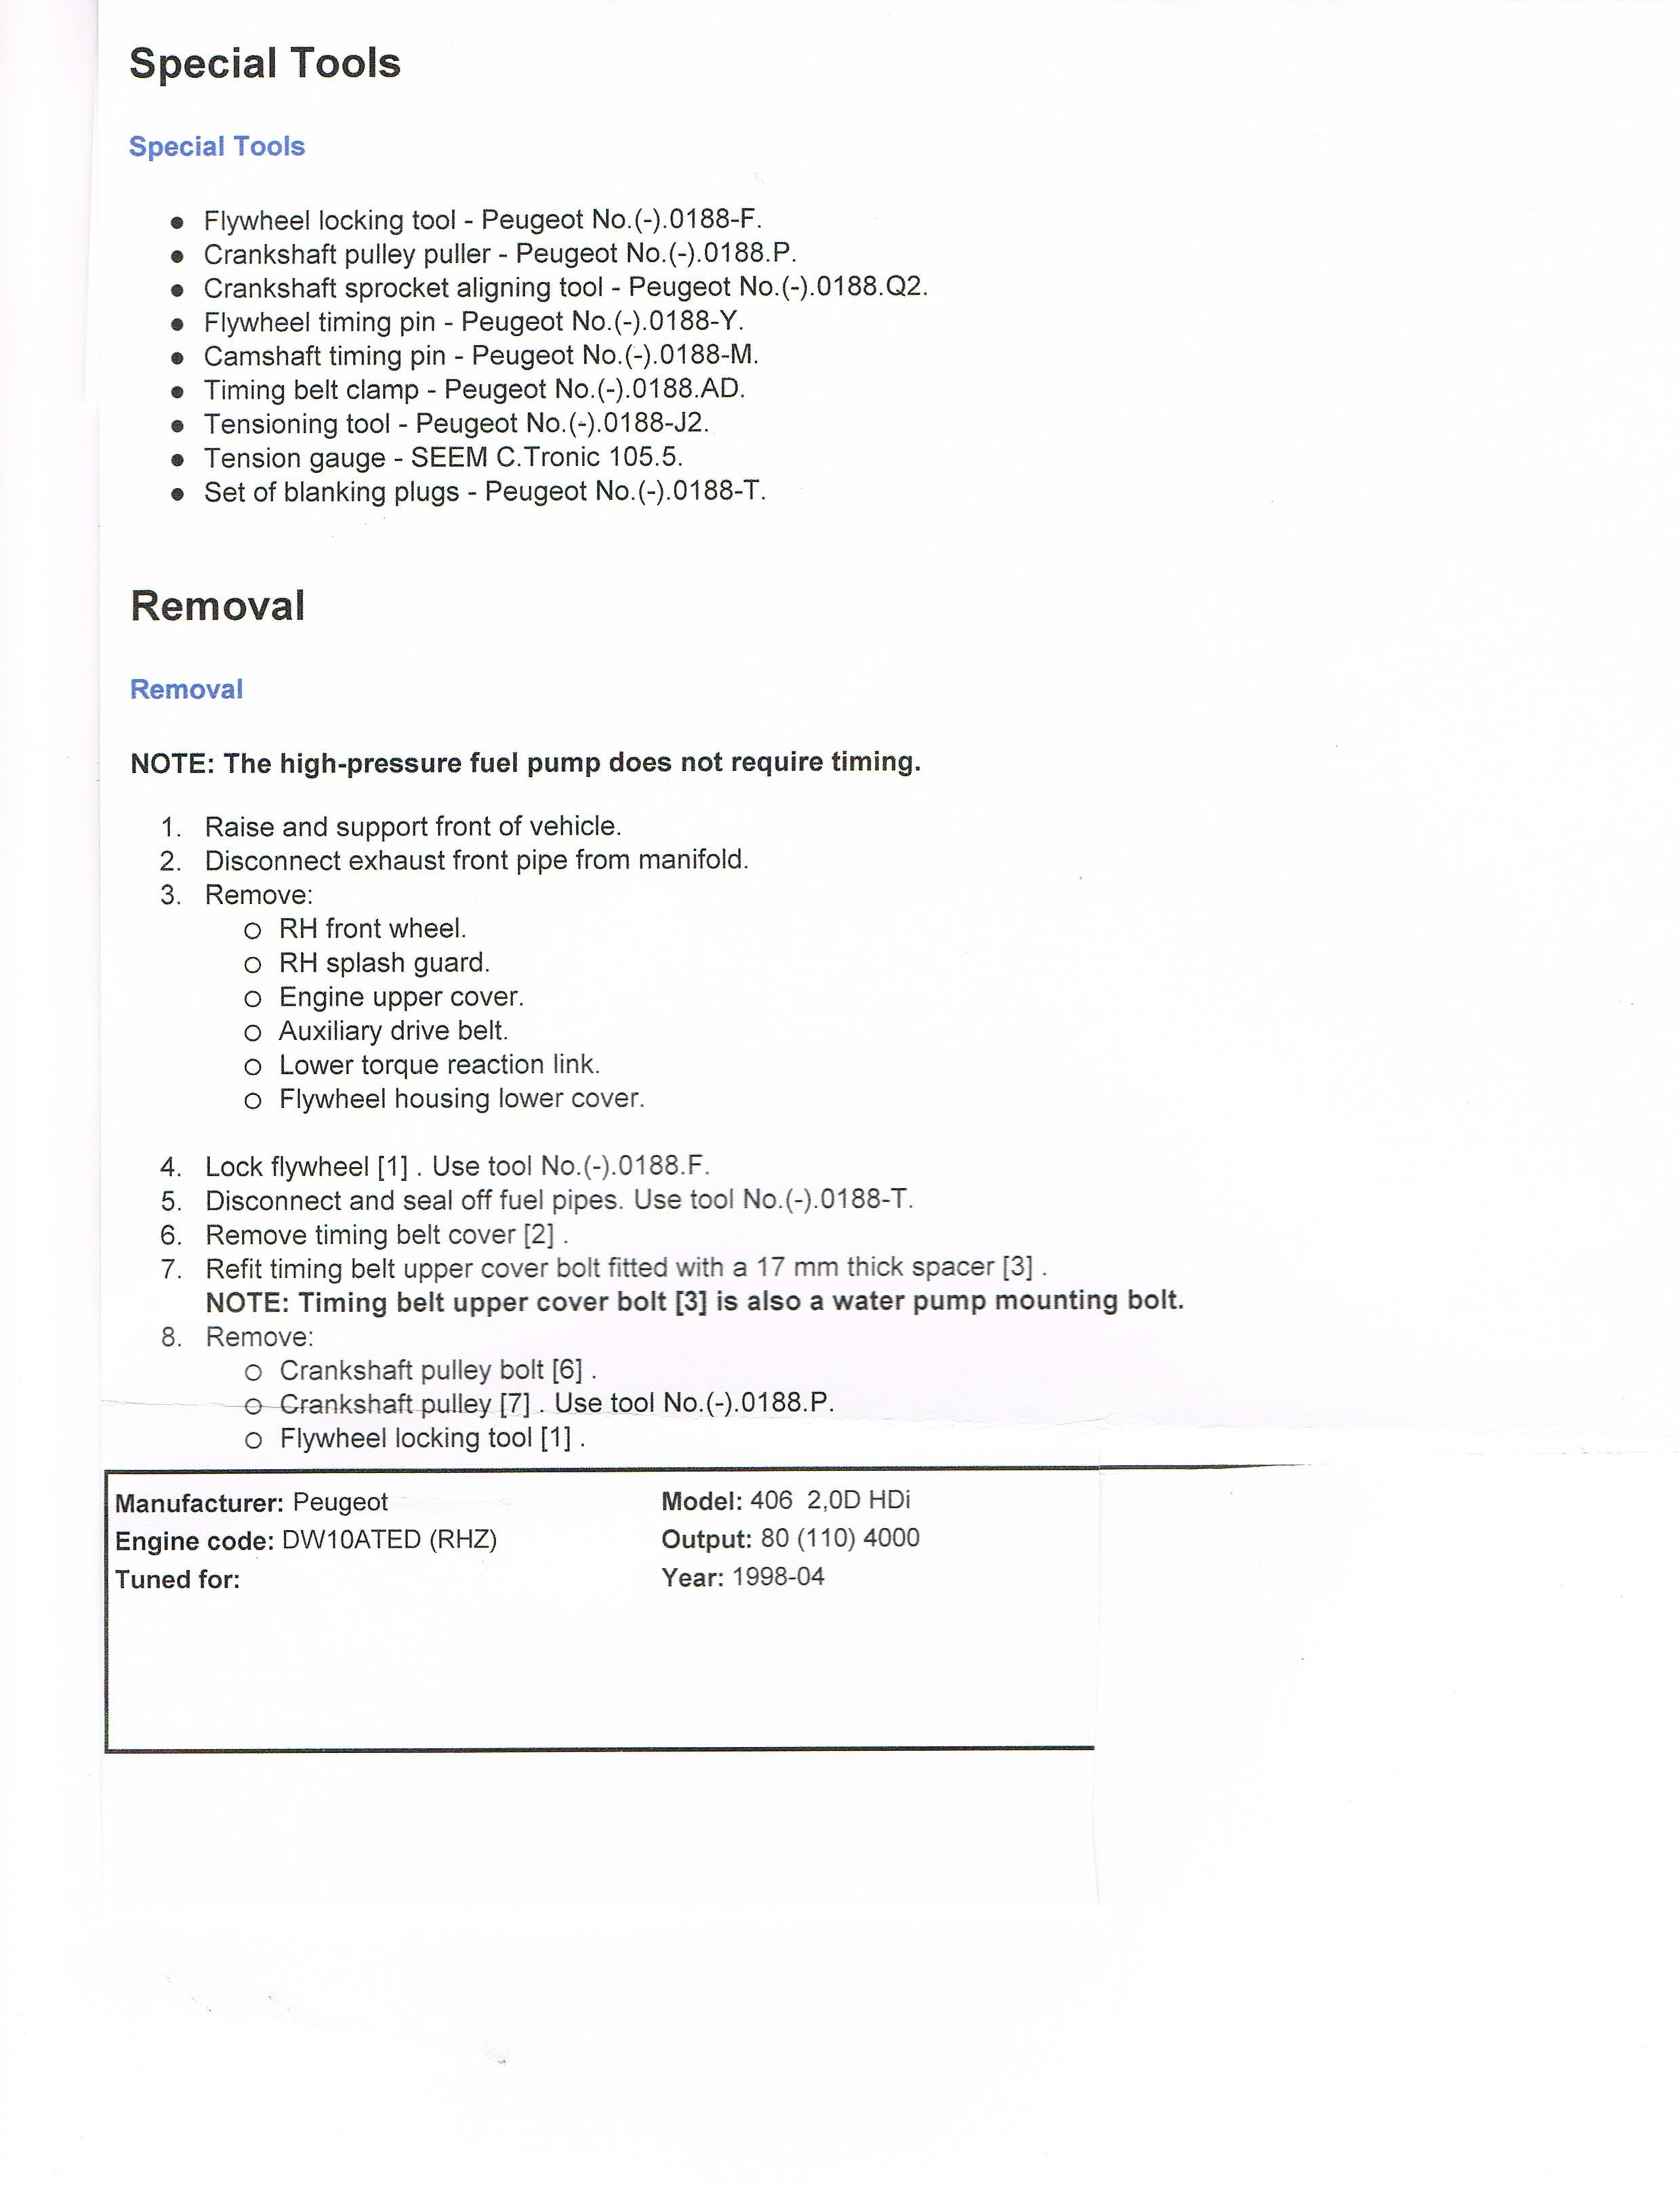 Letter to Irs Template - Template for formal Business Letter New E E Meeting Templates for